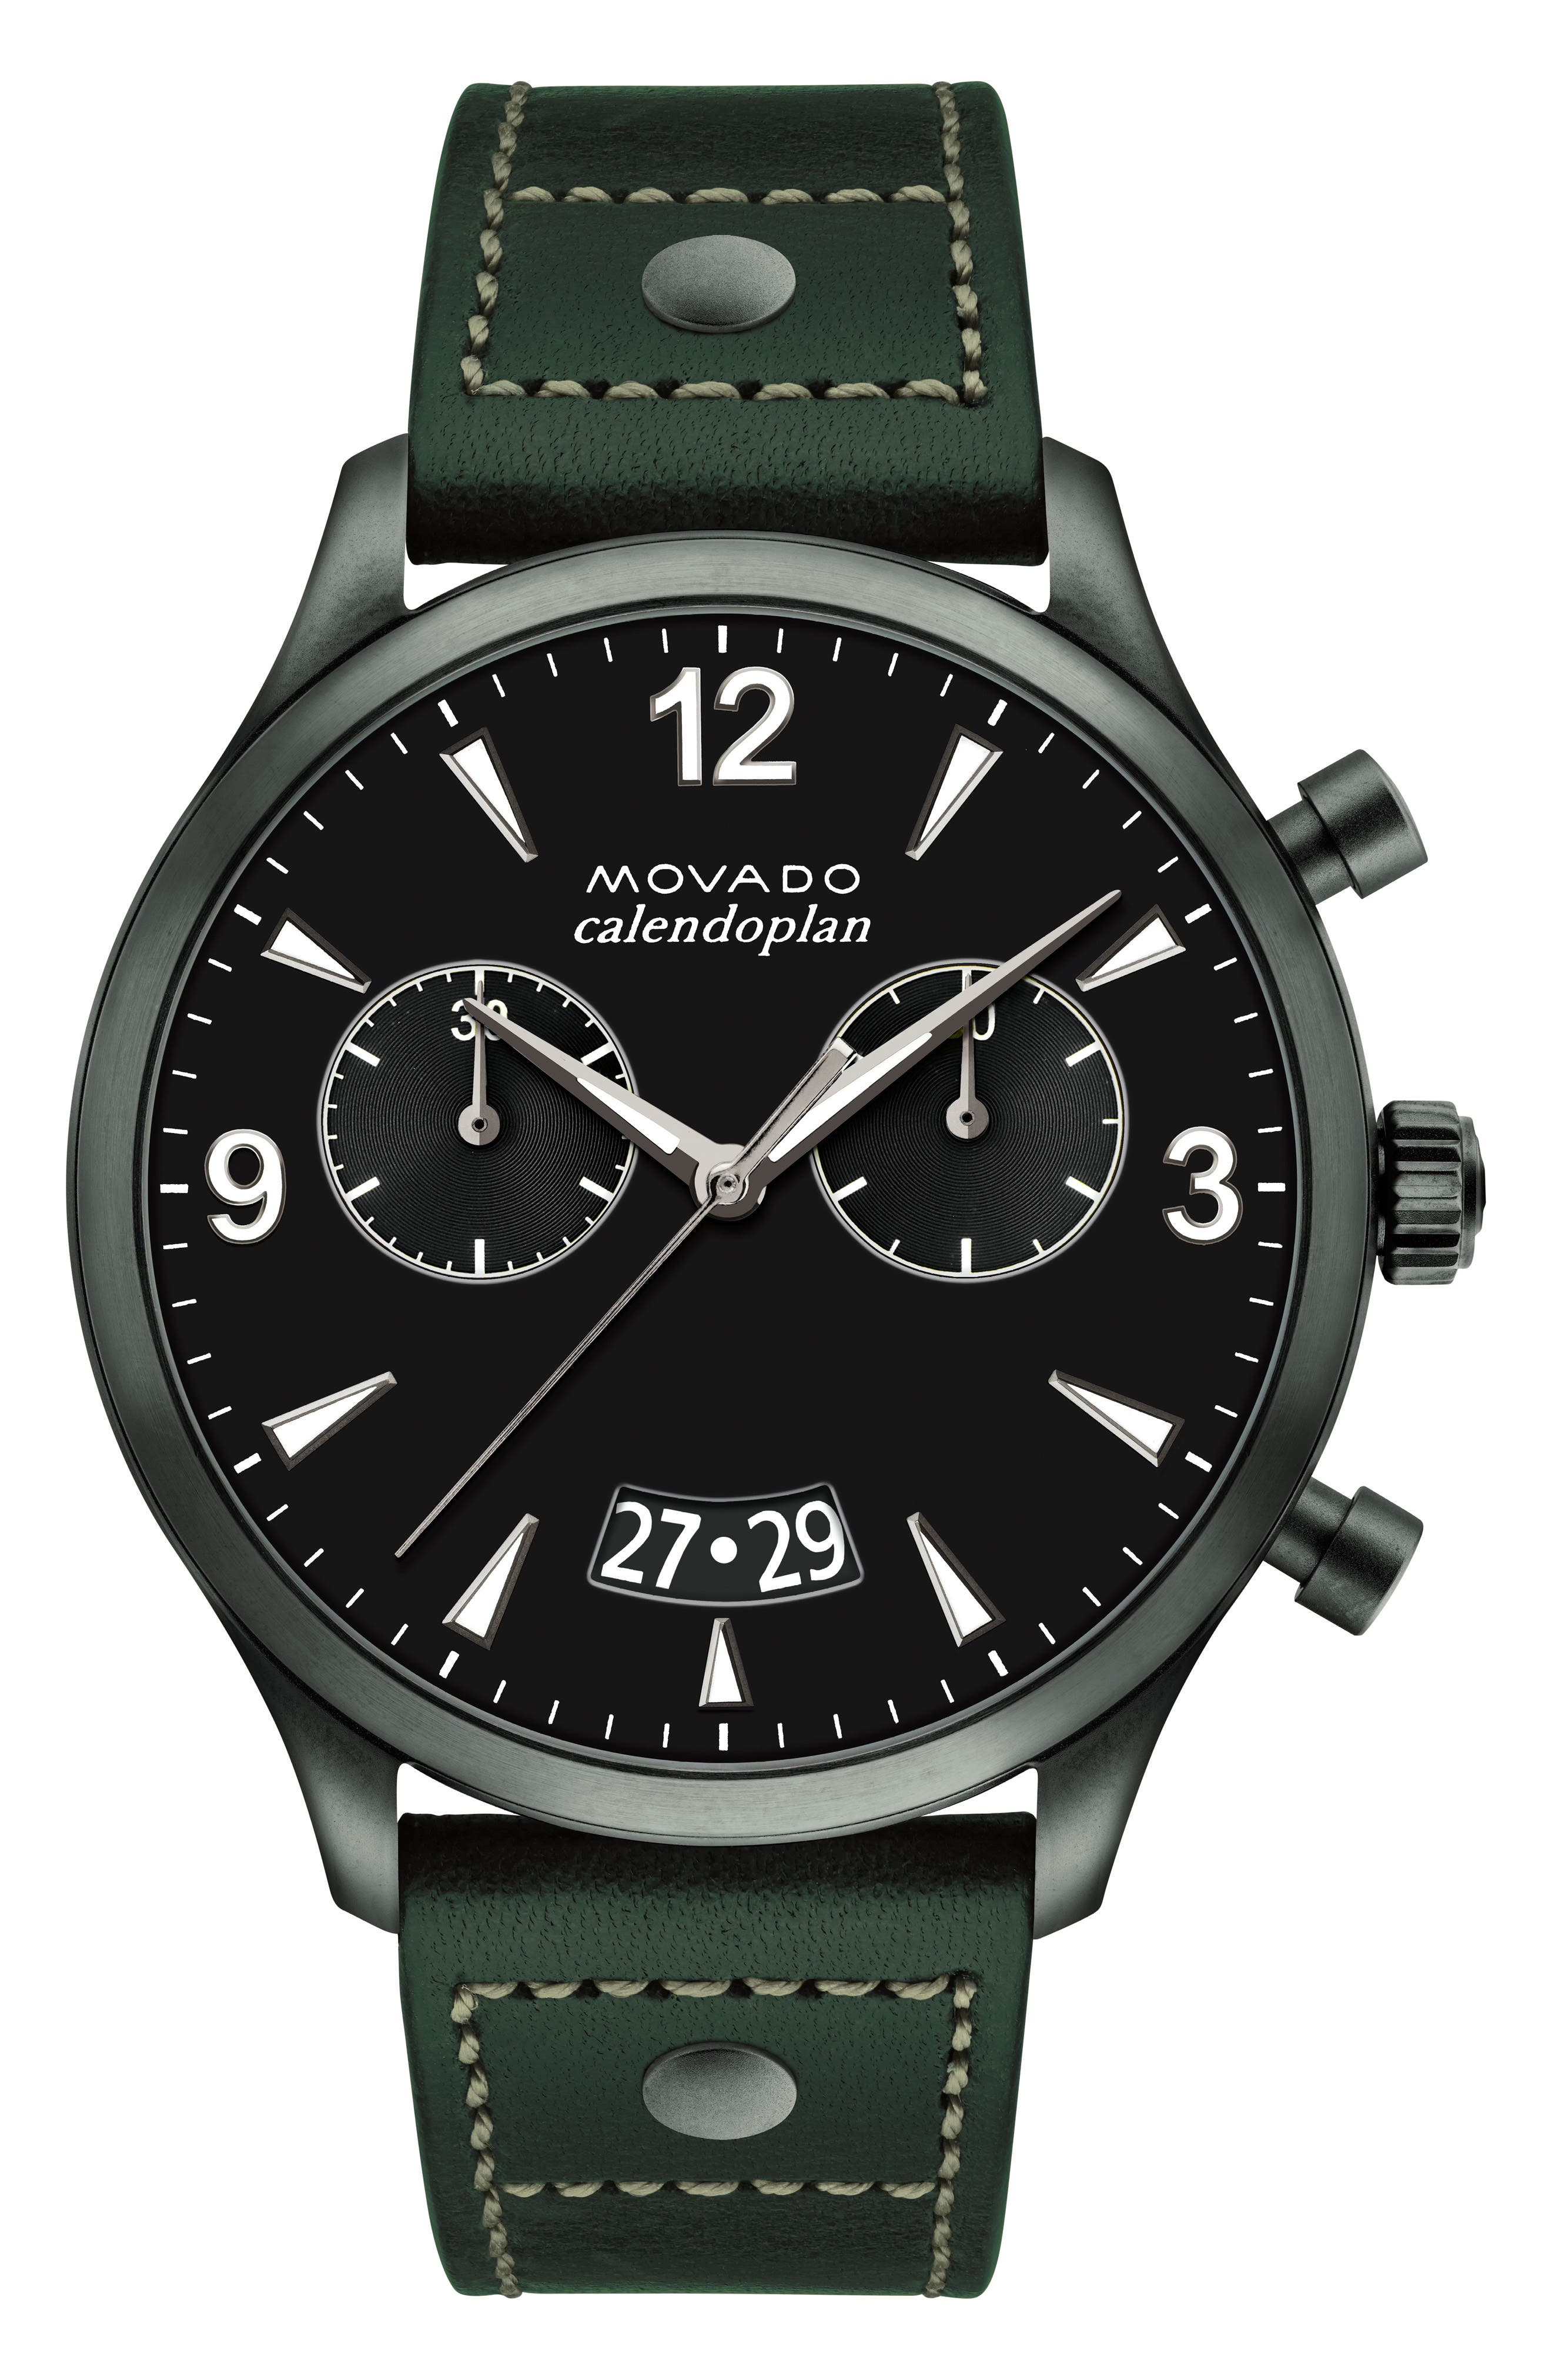 Main Image - Movado Heritage Calendoplan Chronograph Leather Strap Watch, 45mm